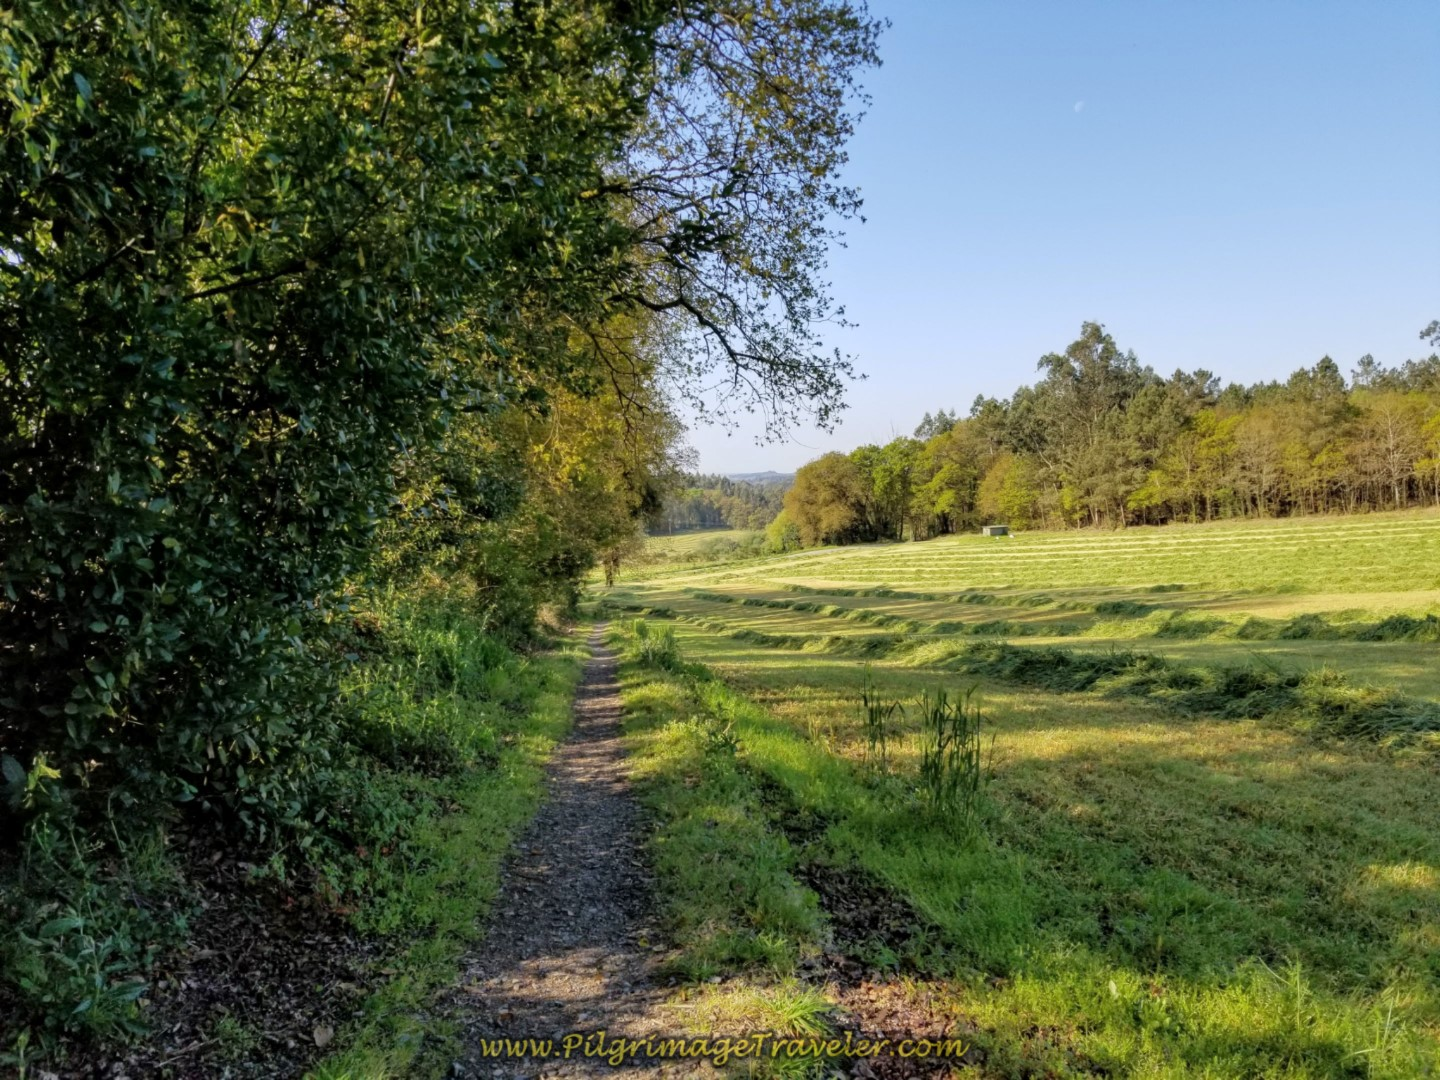 Tractor Lane Walks By Fields on day seven of the Camino Inglés